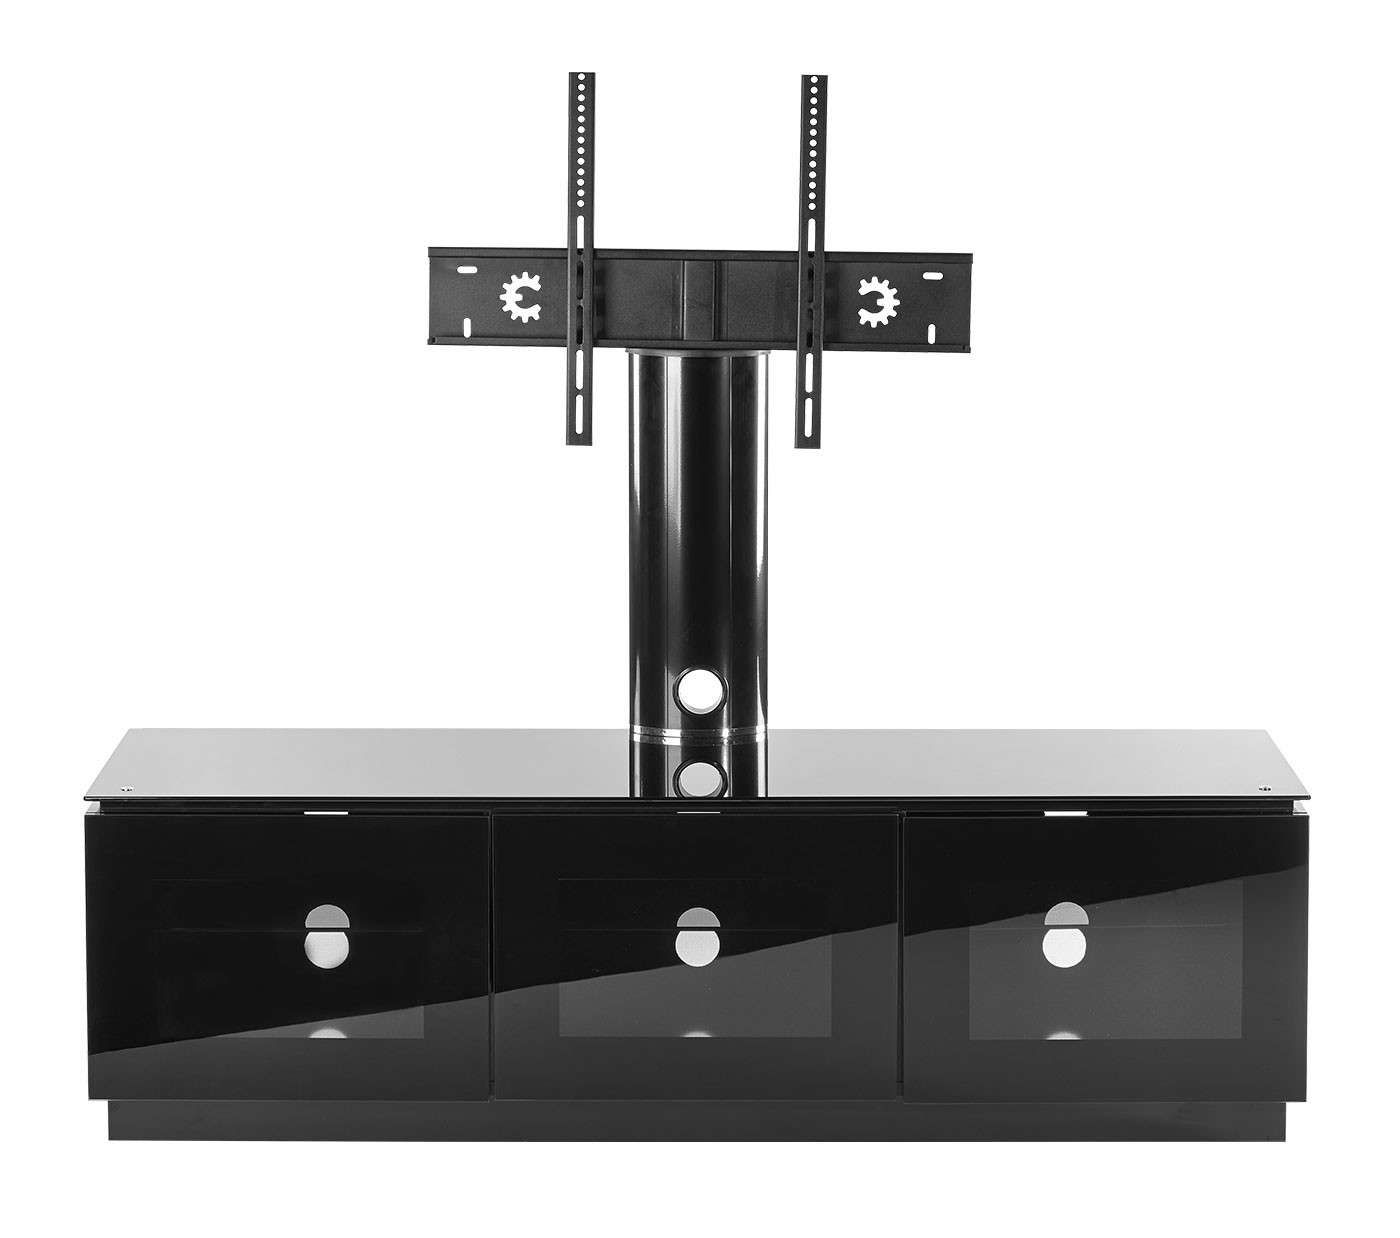 Black Tv Cabinet With Mount For Up To 65 Inch Tv | Mmt D1500 Xarm With Regard To Tv Stands With Mount (View 5 of 15)